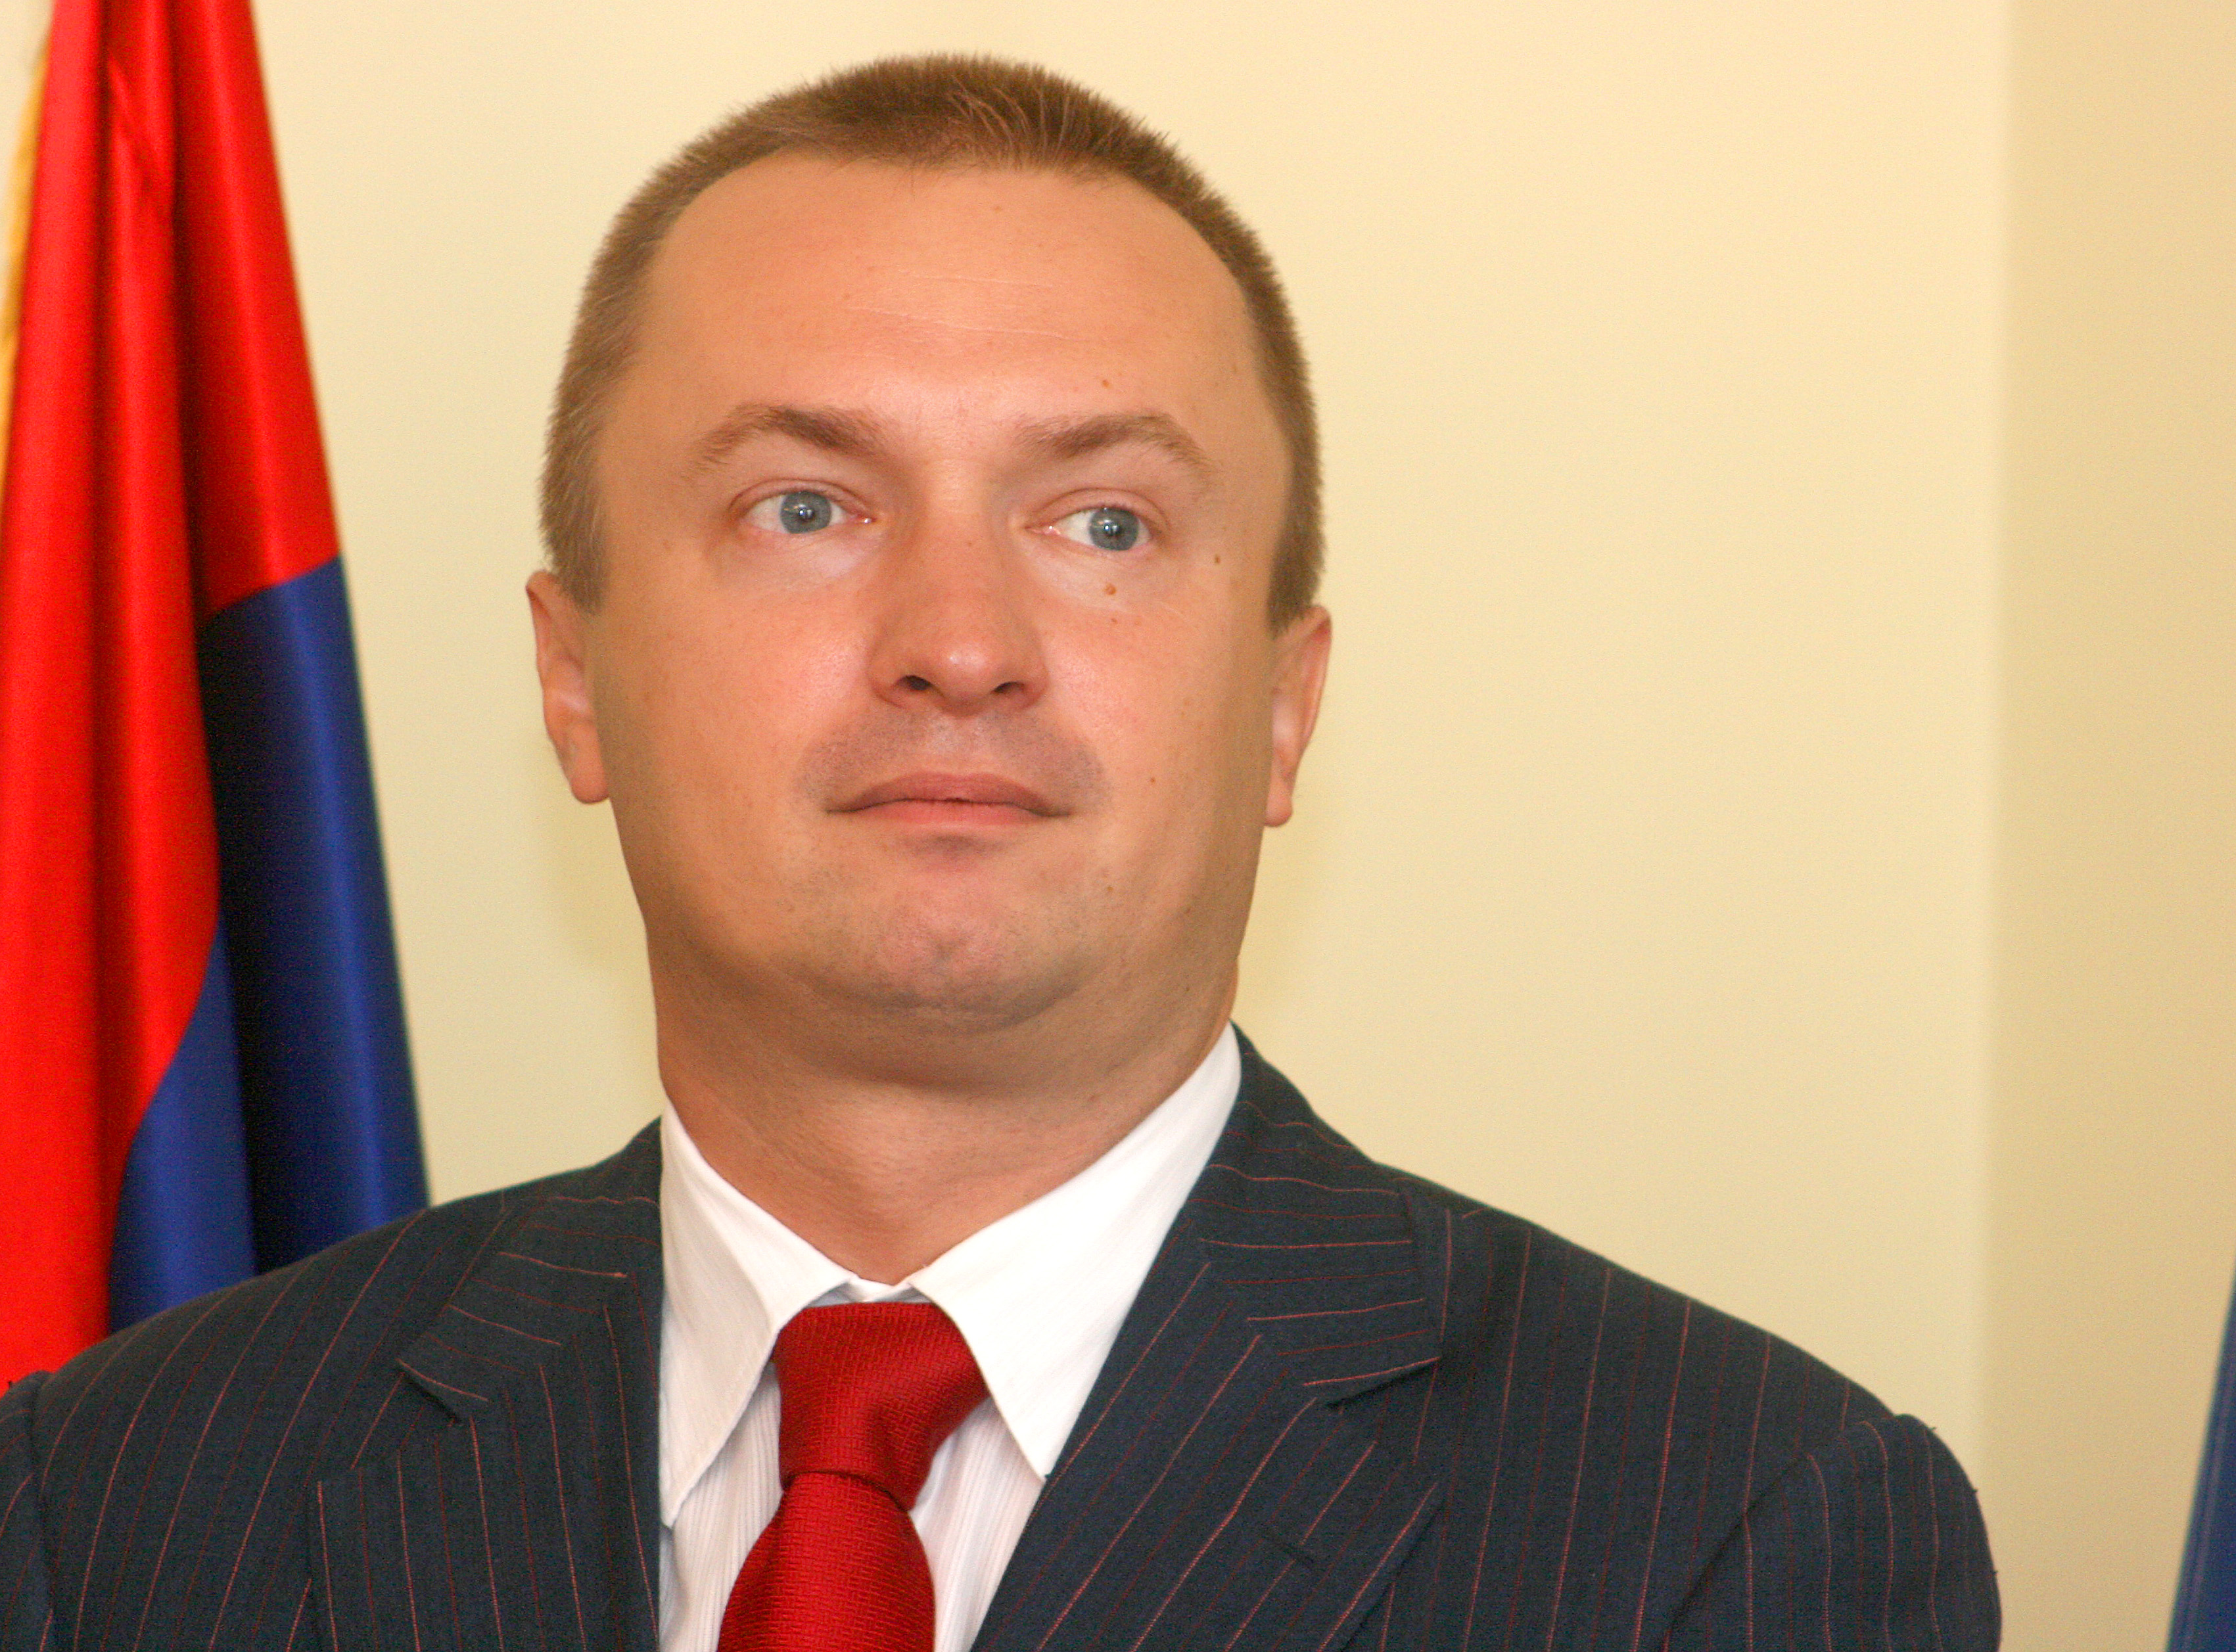 No conditions for free elections in Serbia, DS claim